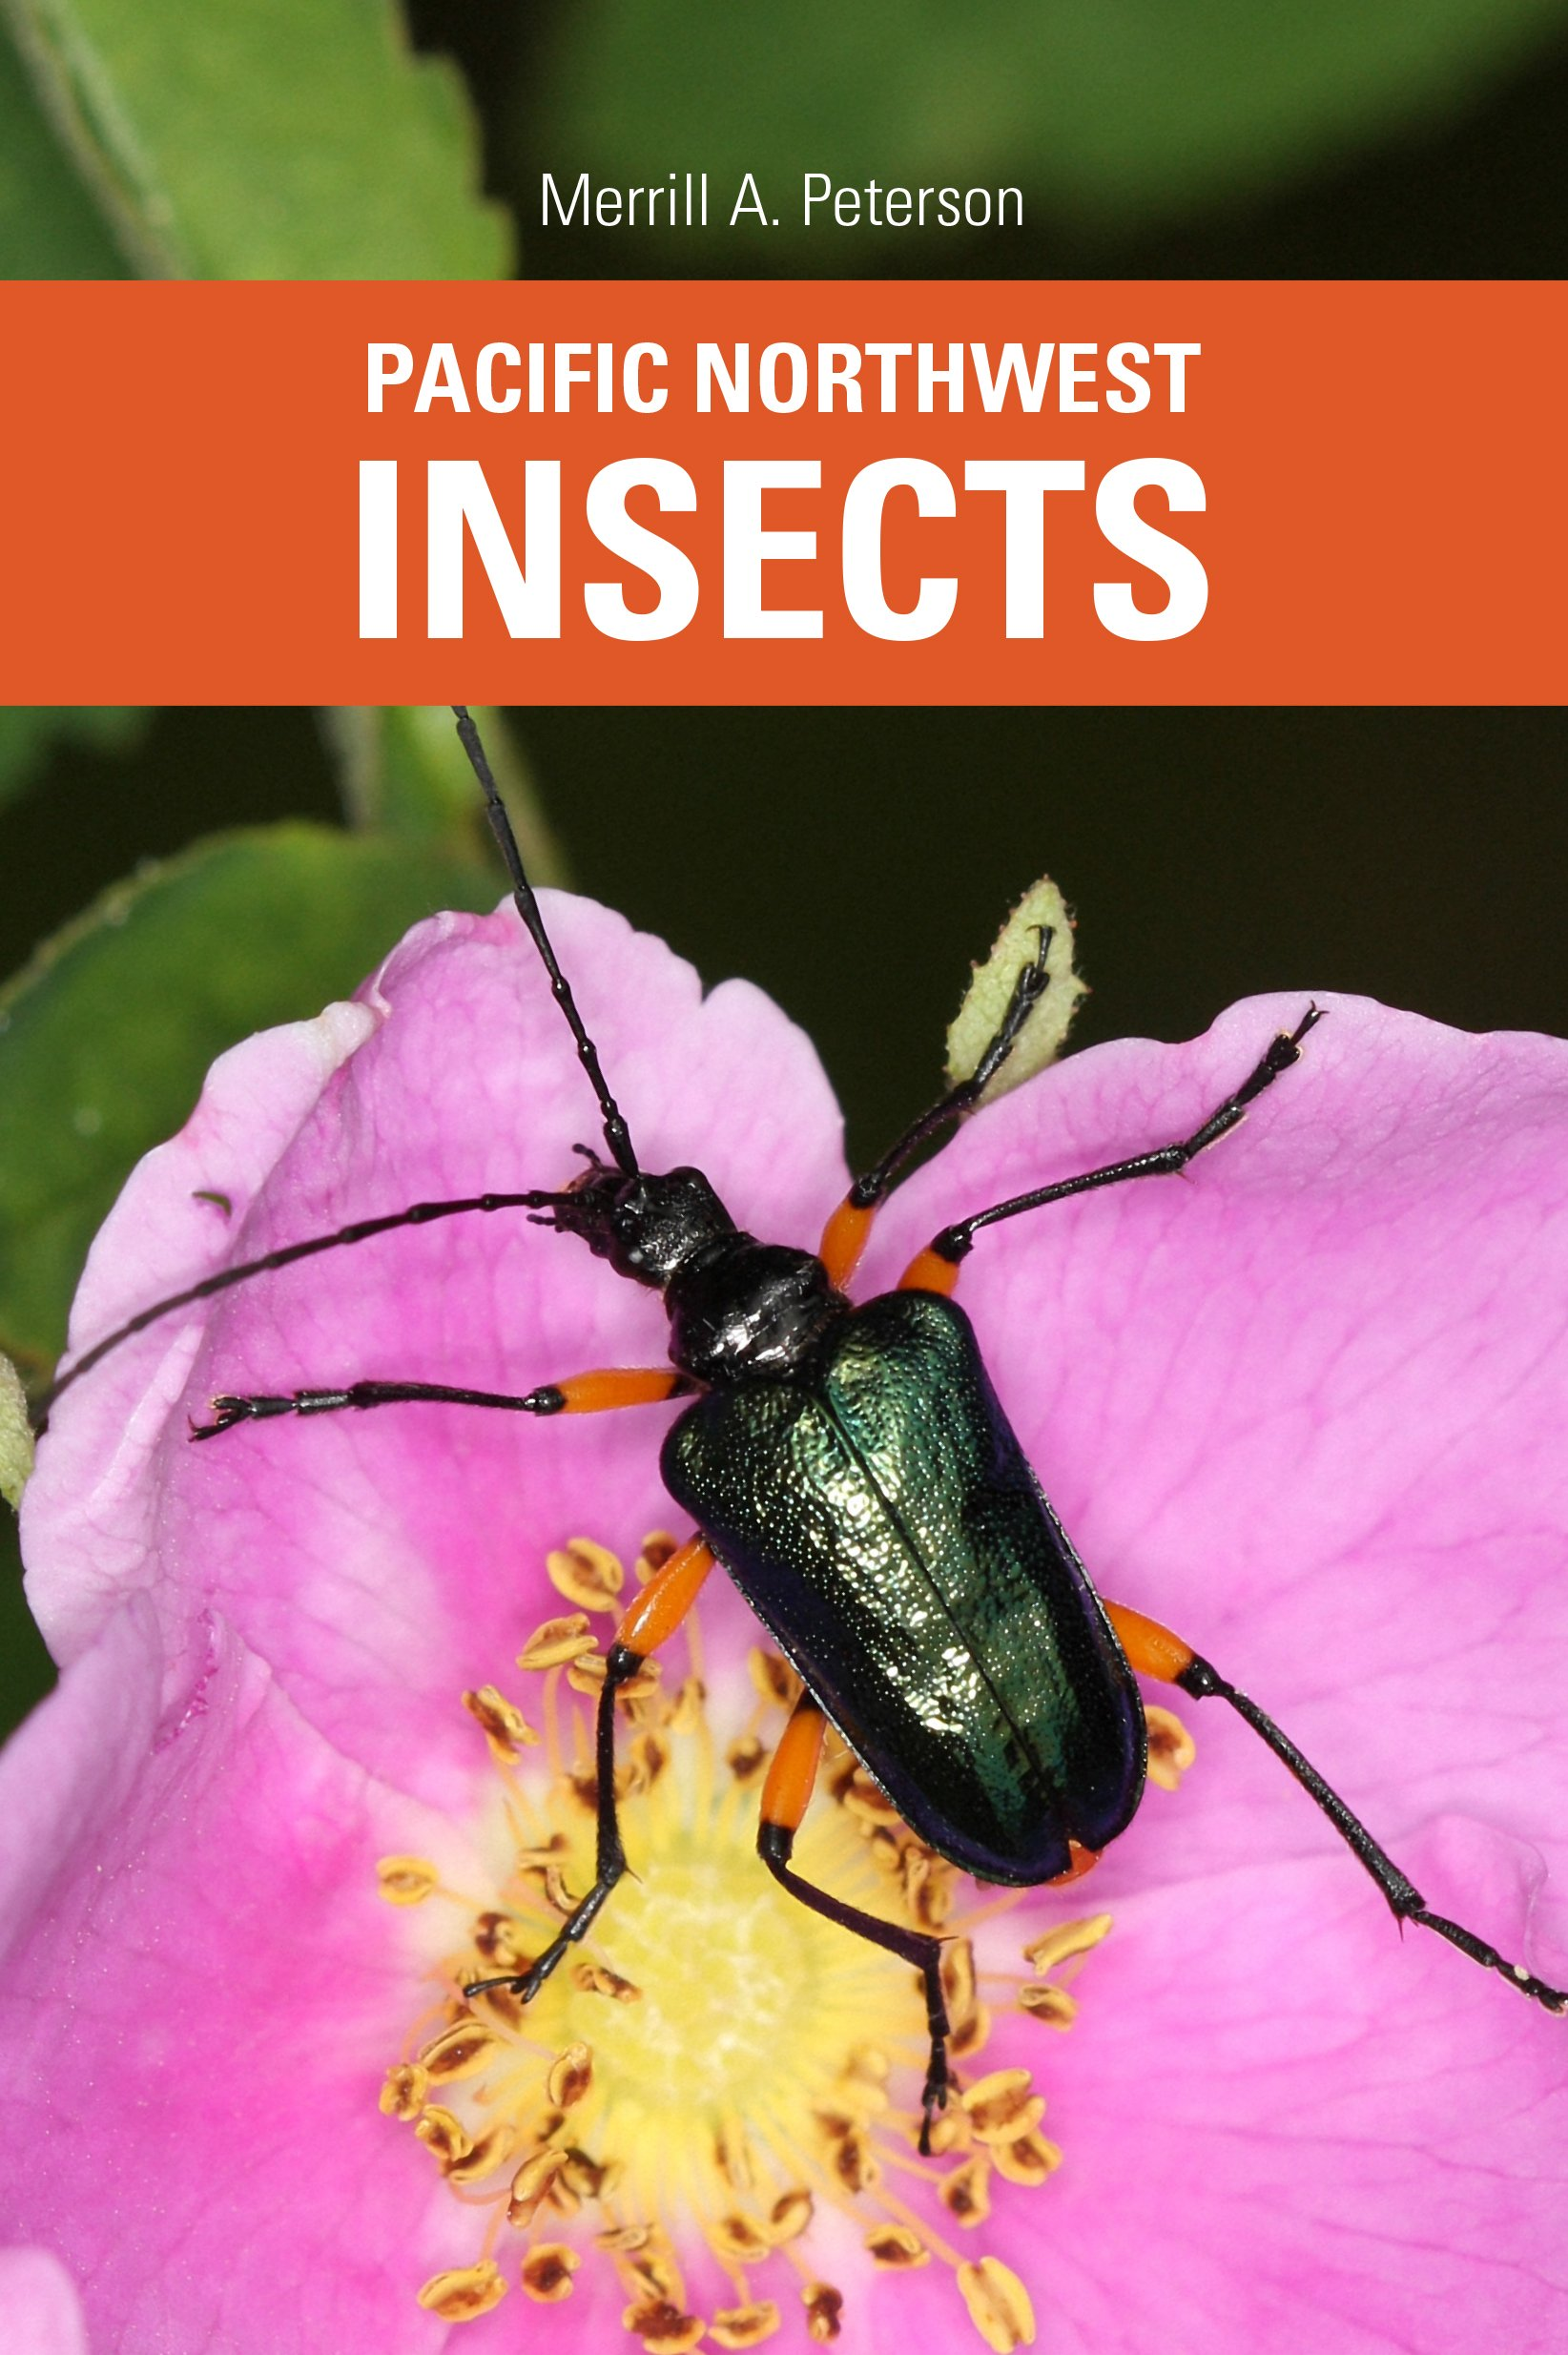 Pacific Northwest Insects: Merrill A  Peterson: 9780914516187